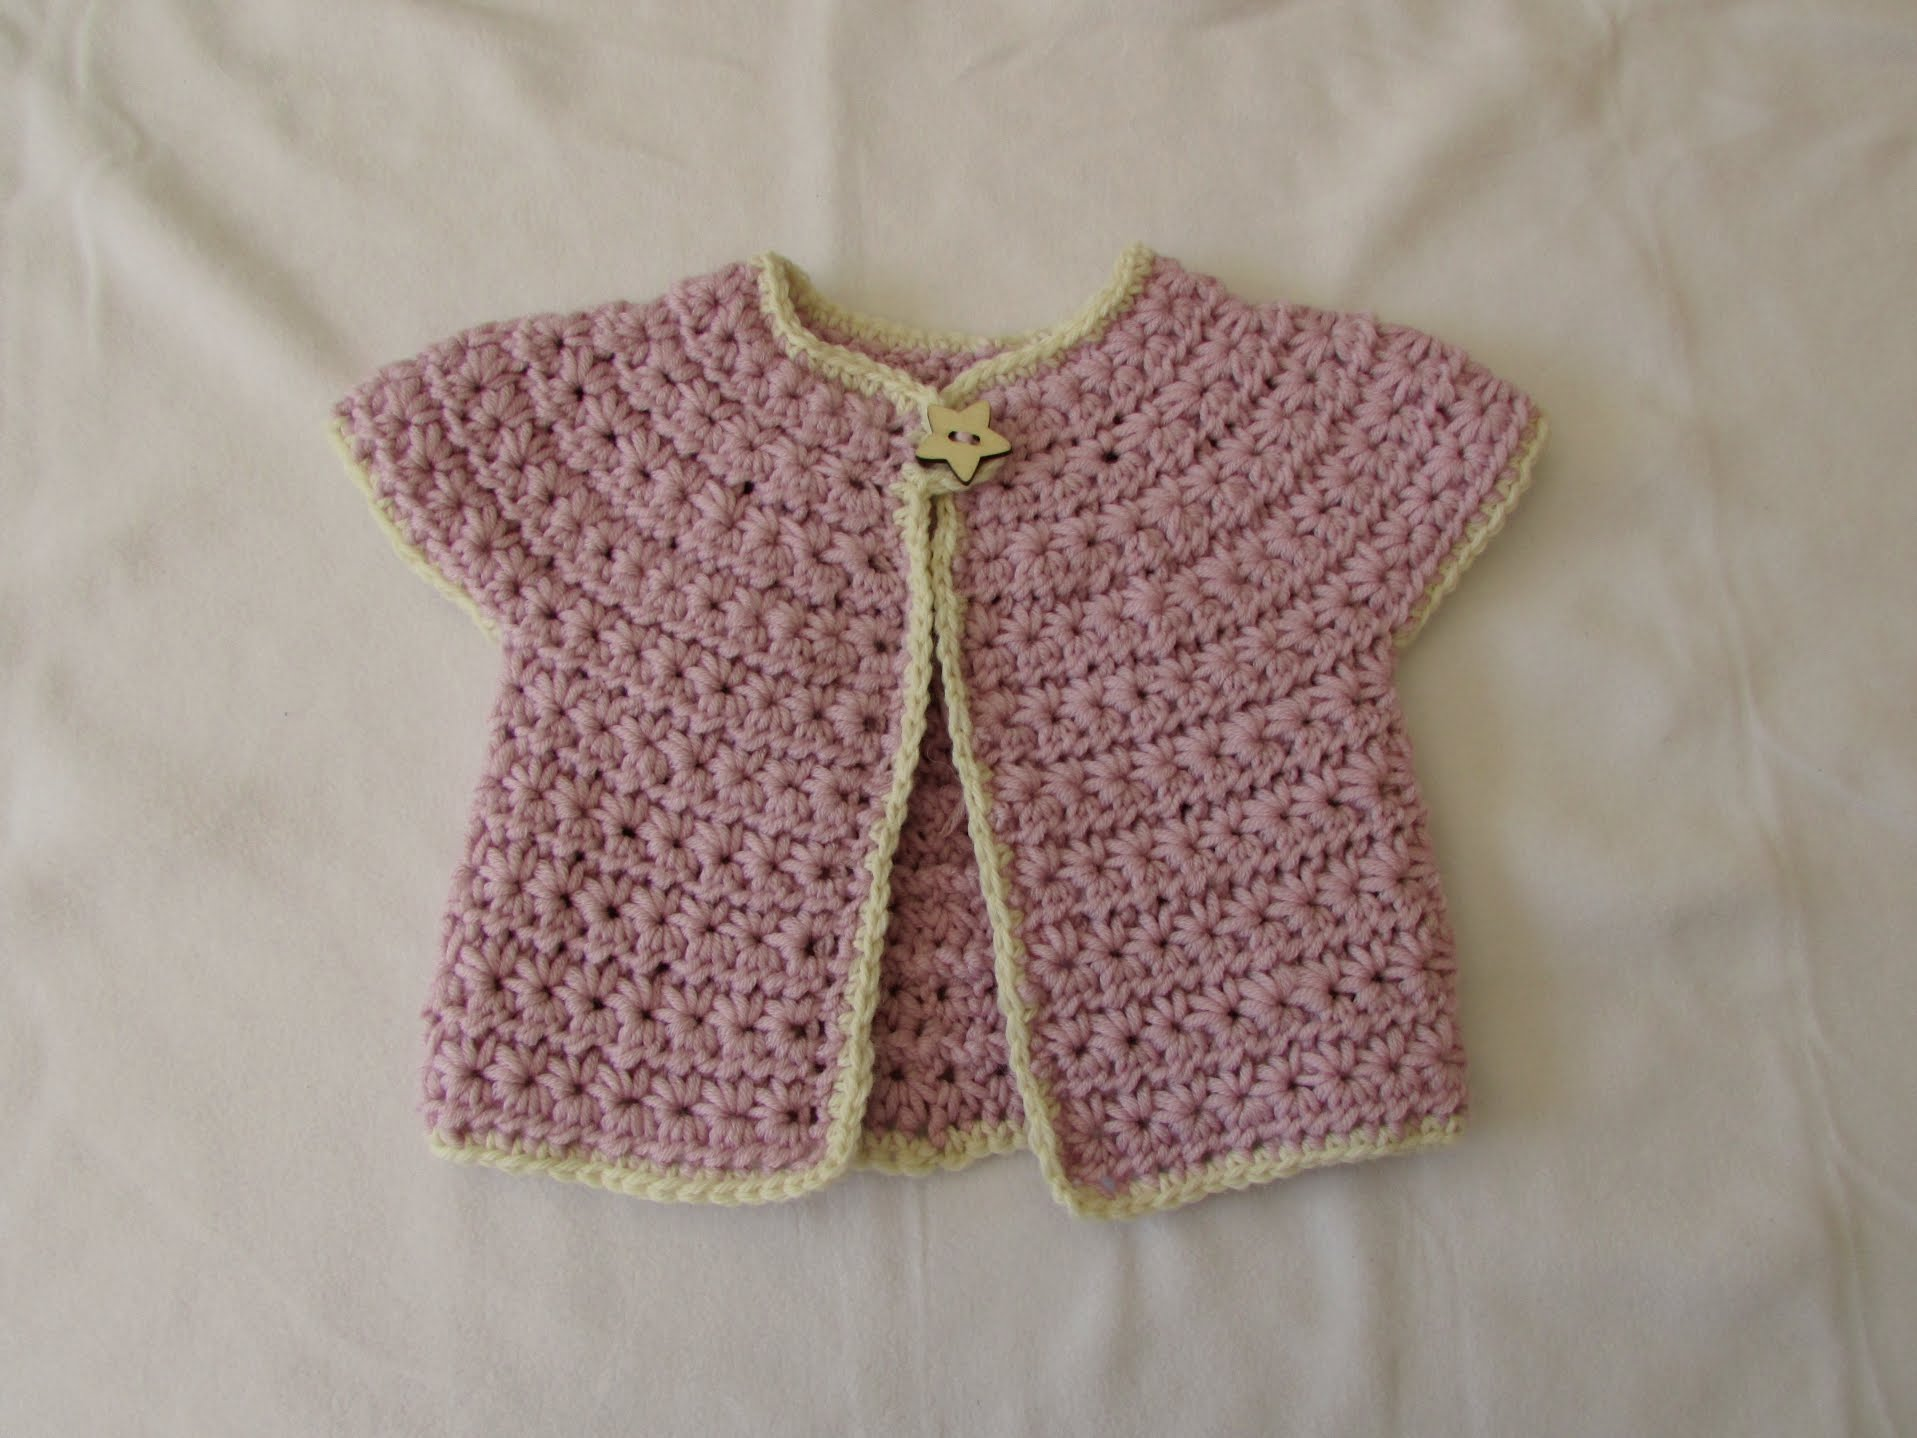 crochet baby sweater how to crochet a chunky star stitch baby cardigan / sweater / jumper - VCULIOS